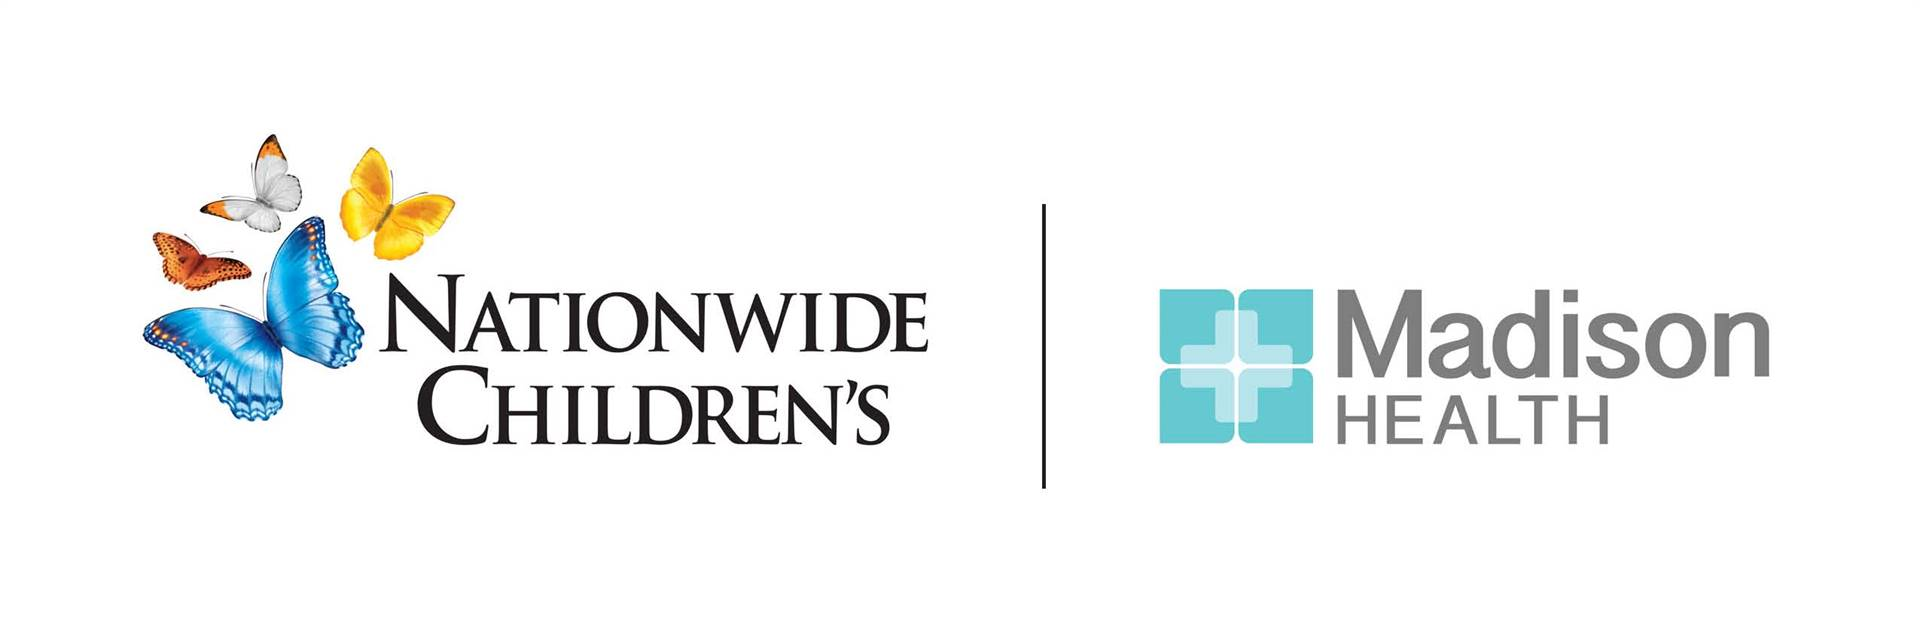 National Wide Children's and Madison Health